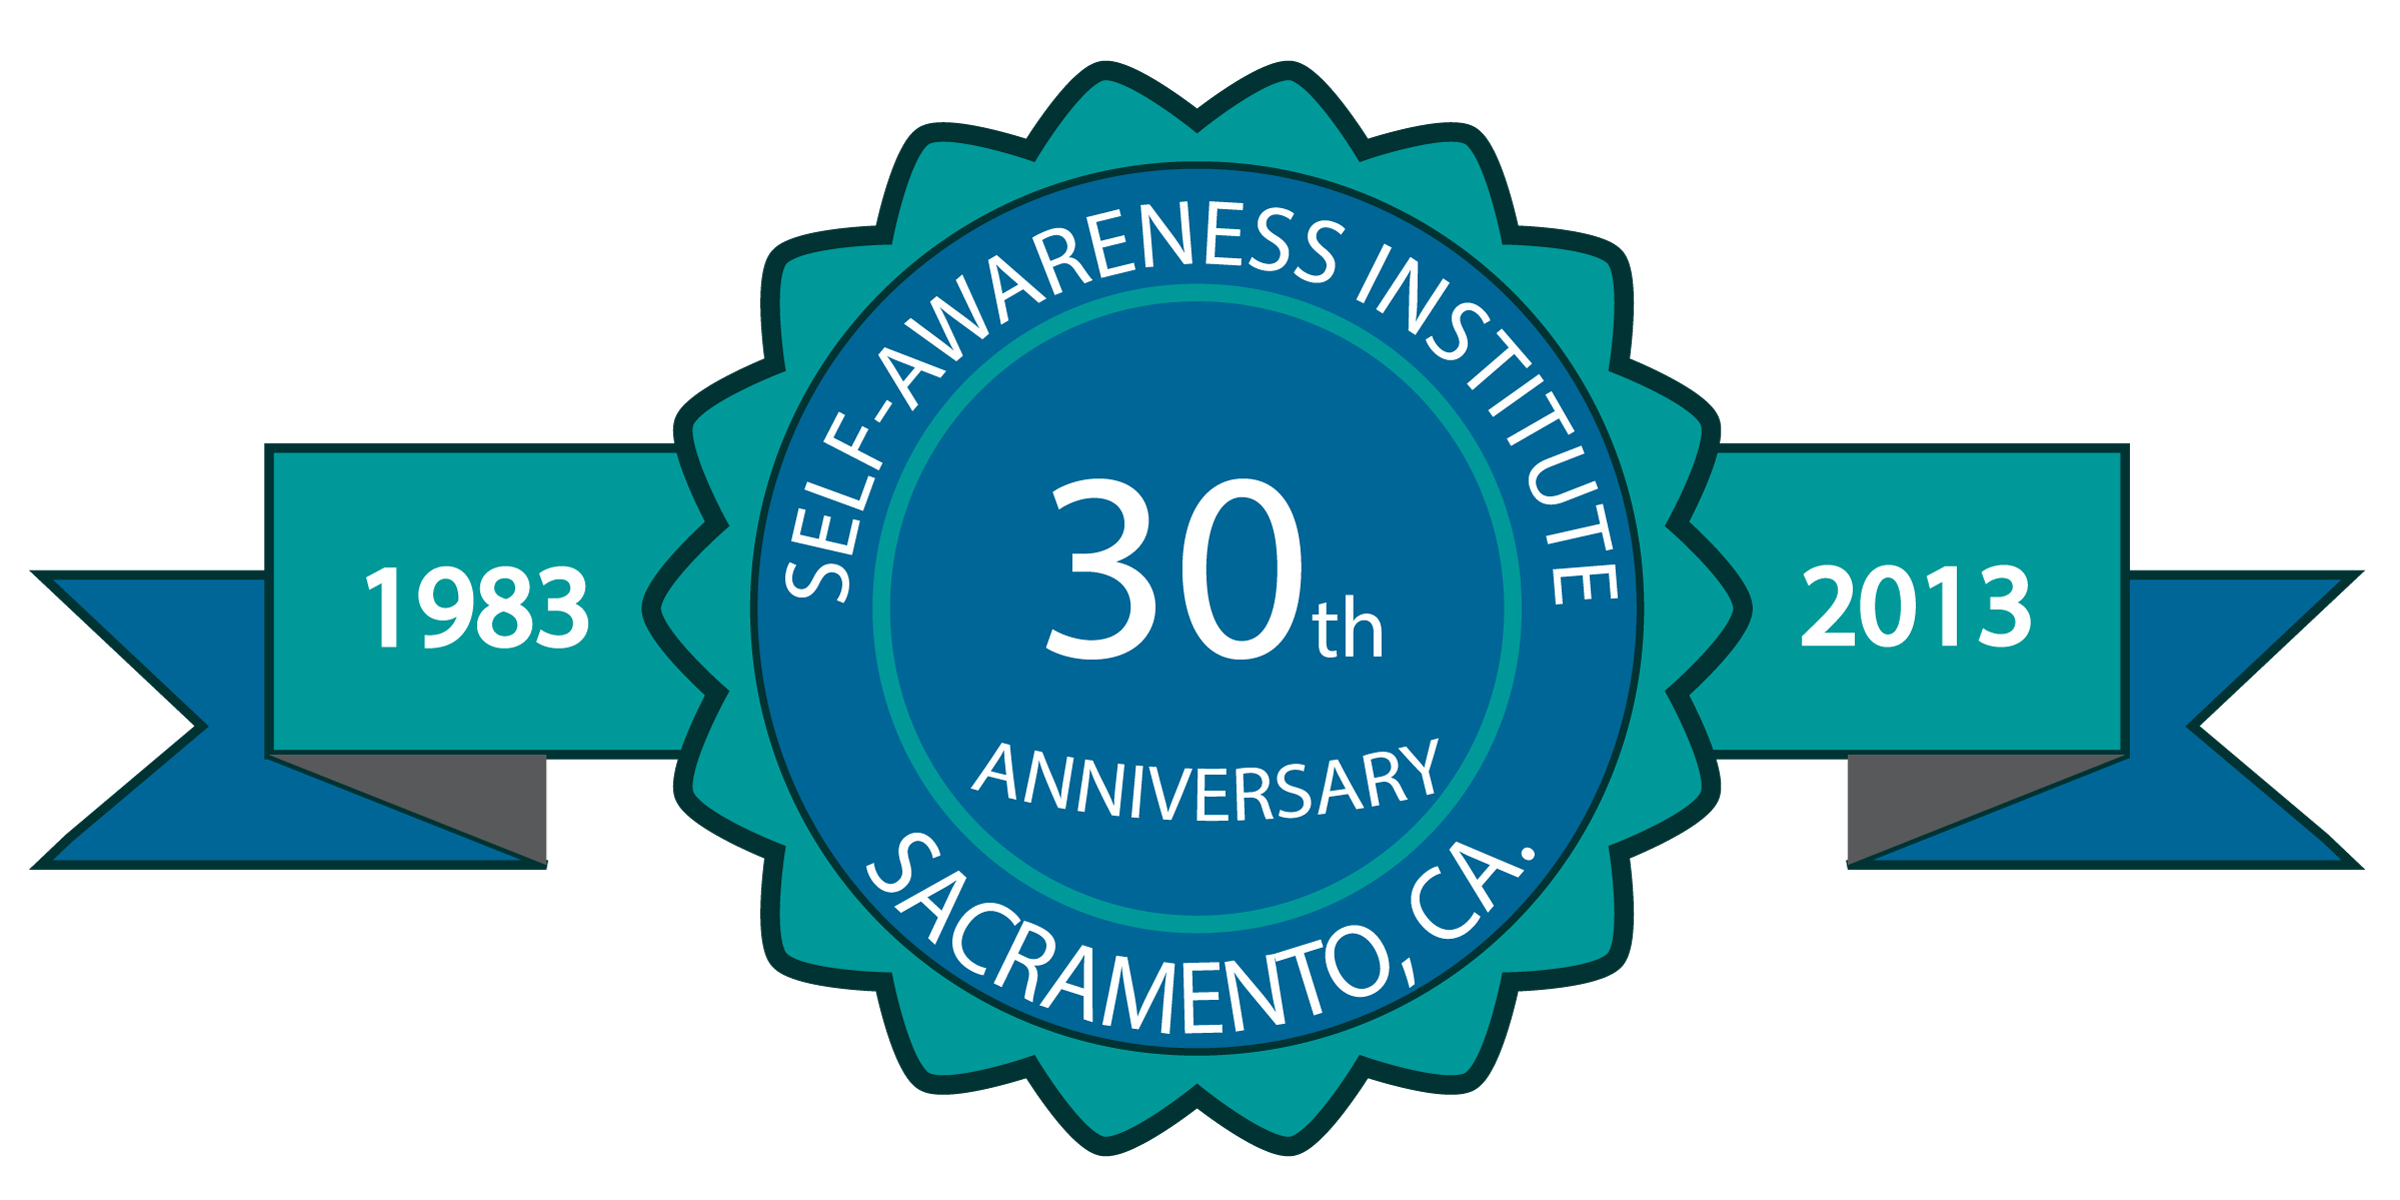 30th anniversary of the Self Awareness Institute Counseling Center